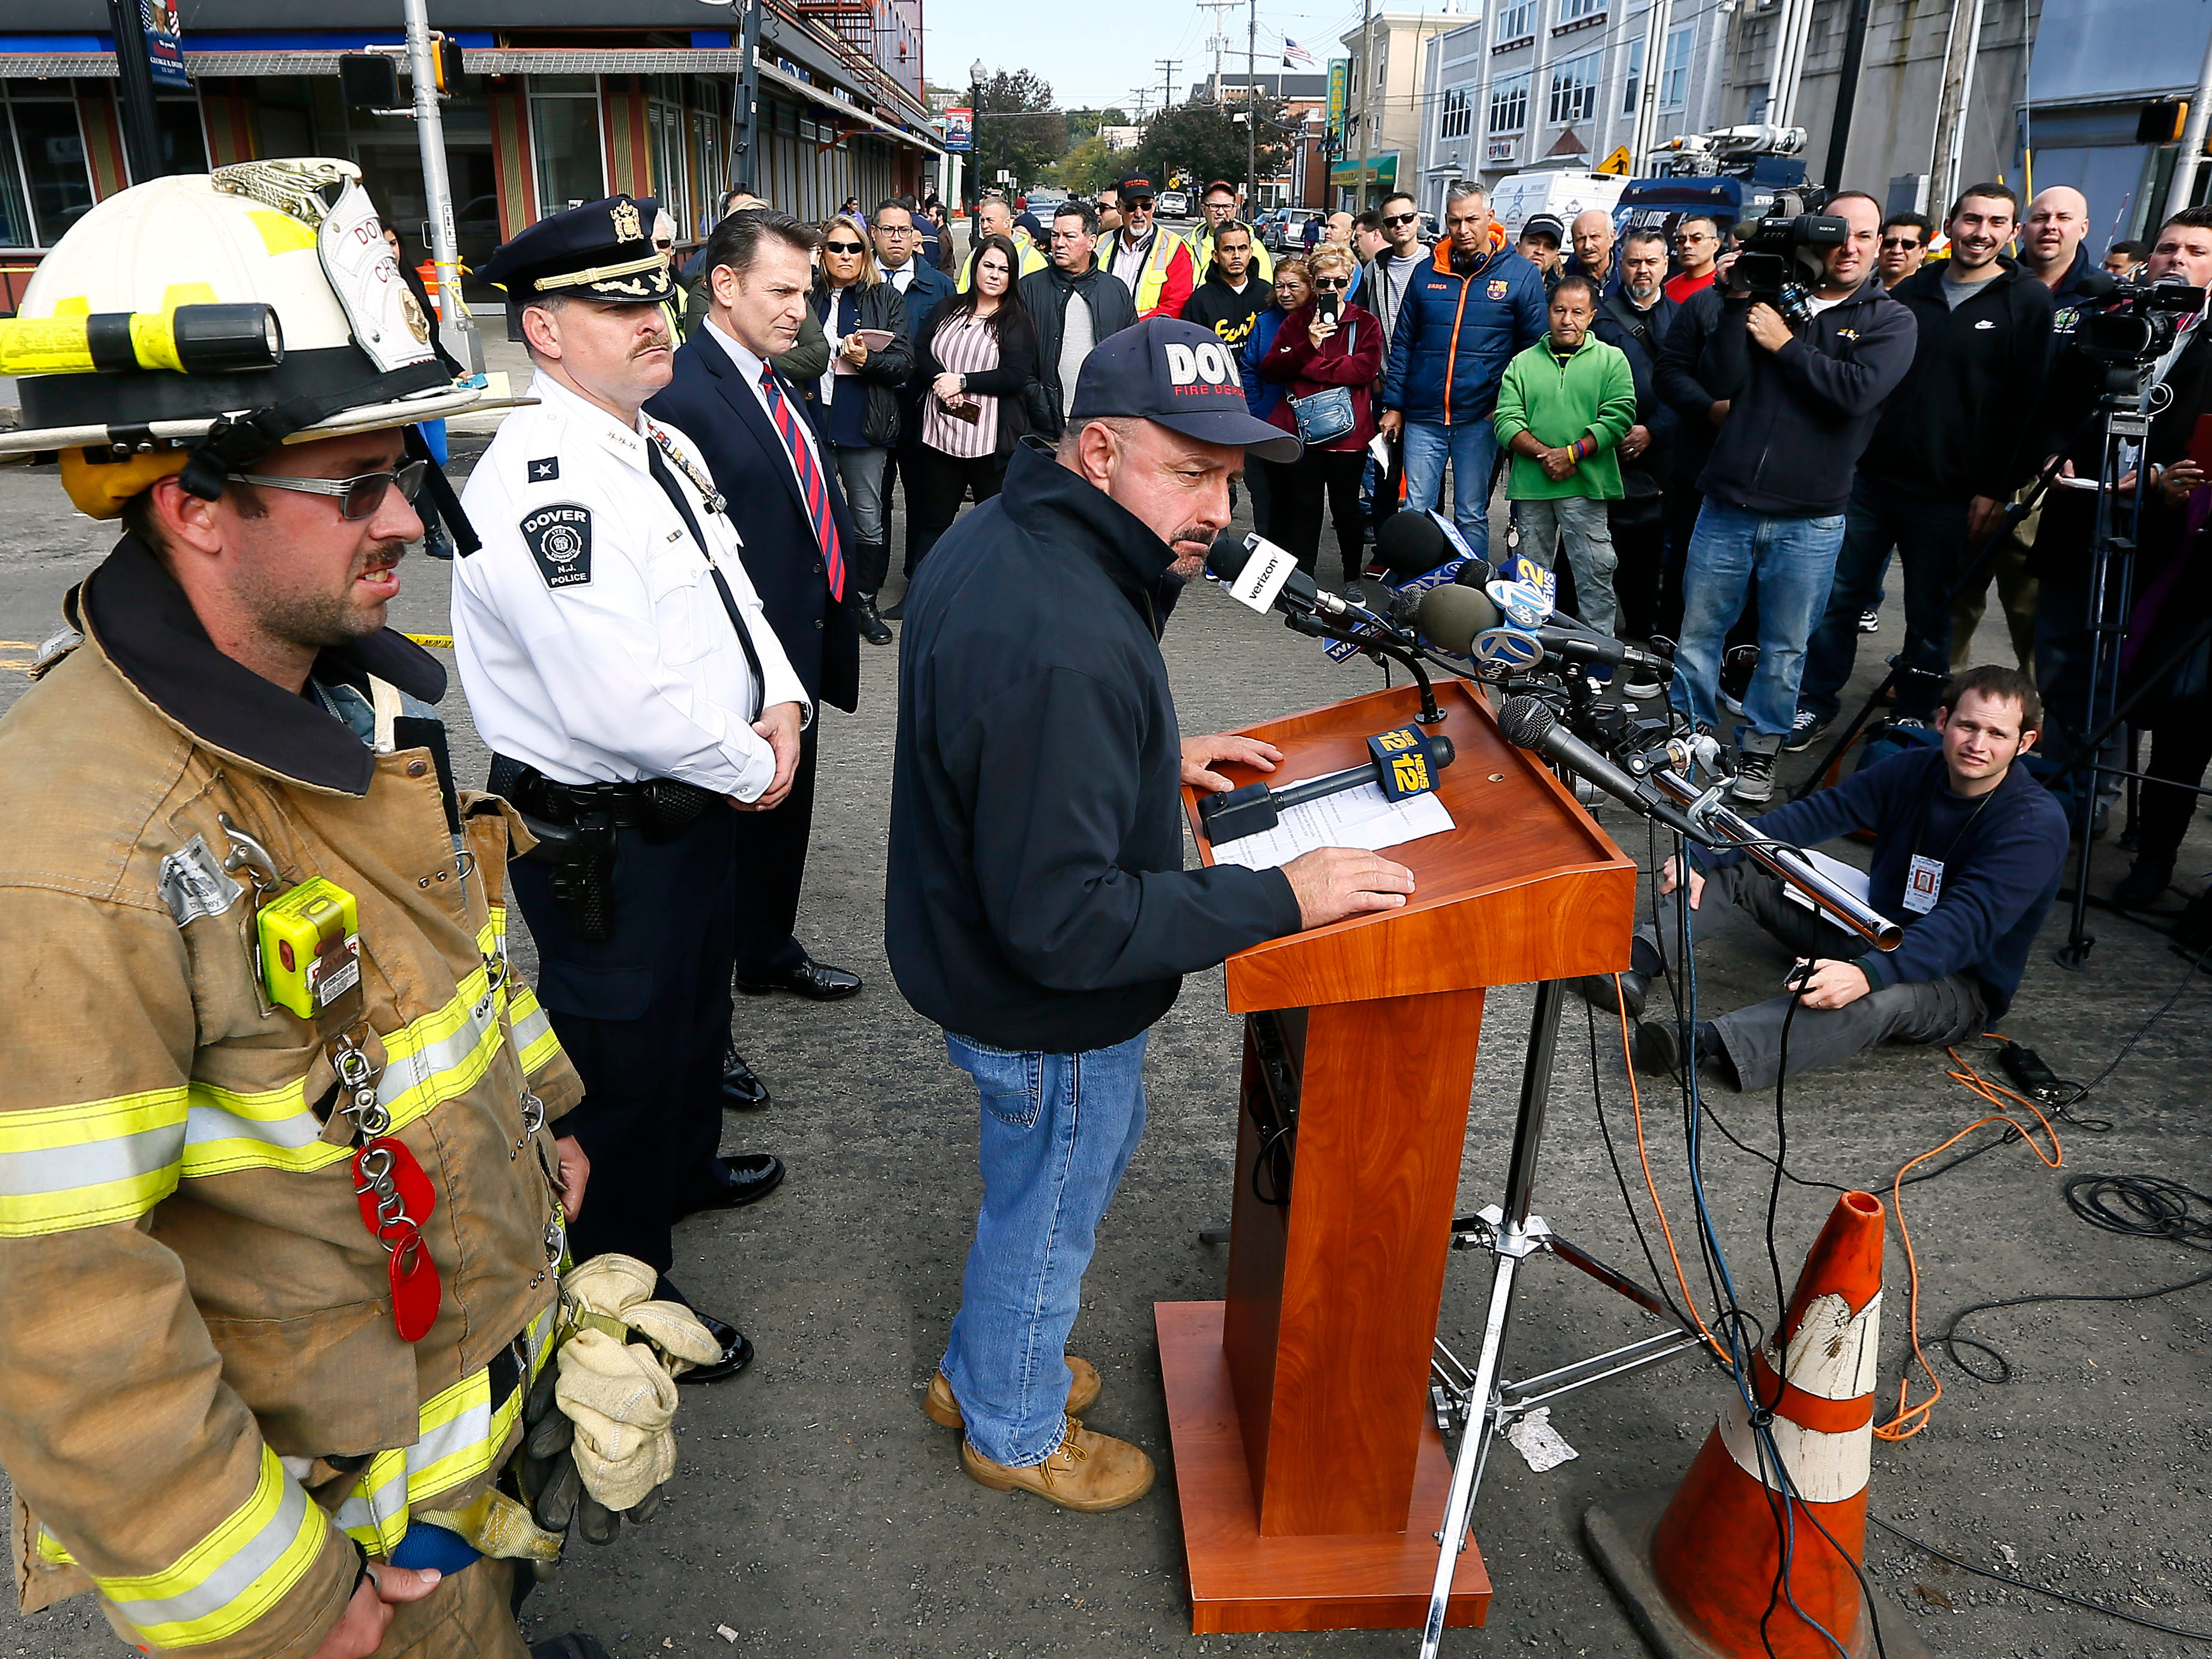 Dover Mayor James P. Dodd, c, speaks to the media and residents supported by Fire Chief Robert Sperry, l, and Police Chief Anthony Smith  the morning after a devastating fire on North Warren Street in Dover that collapsed multiple businesses in a fast-moving, seven-alarm blaze that officials say started in the basement of Barry's restaurant. The fire then spread throughout the building and to others nearby that contained businesses and apartments Displacing about 100 people from their homes. October 23, 2018, Dover, NJ